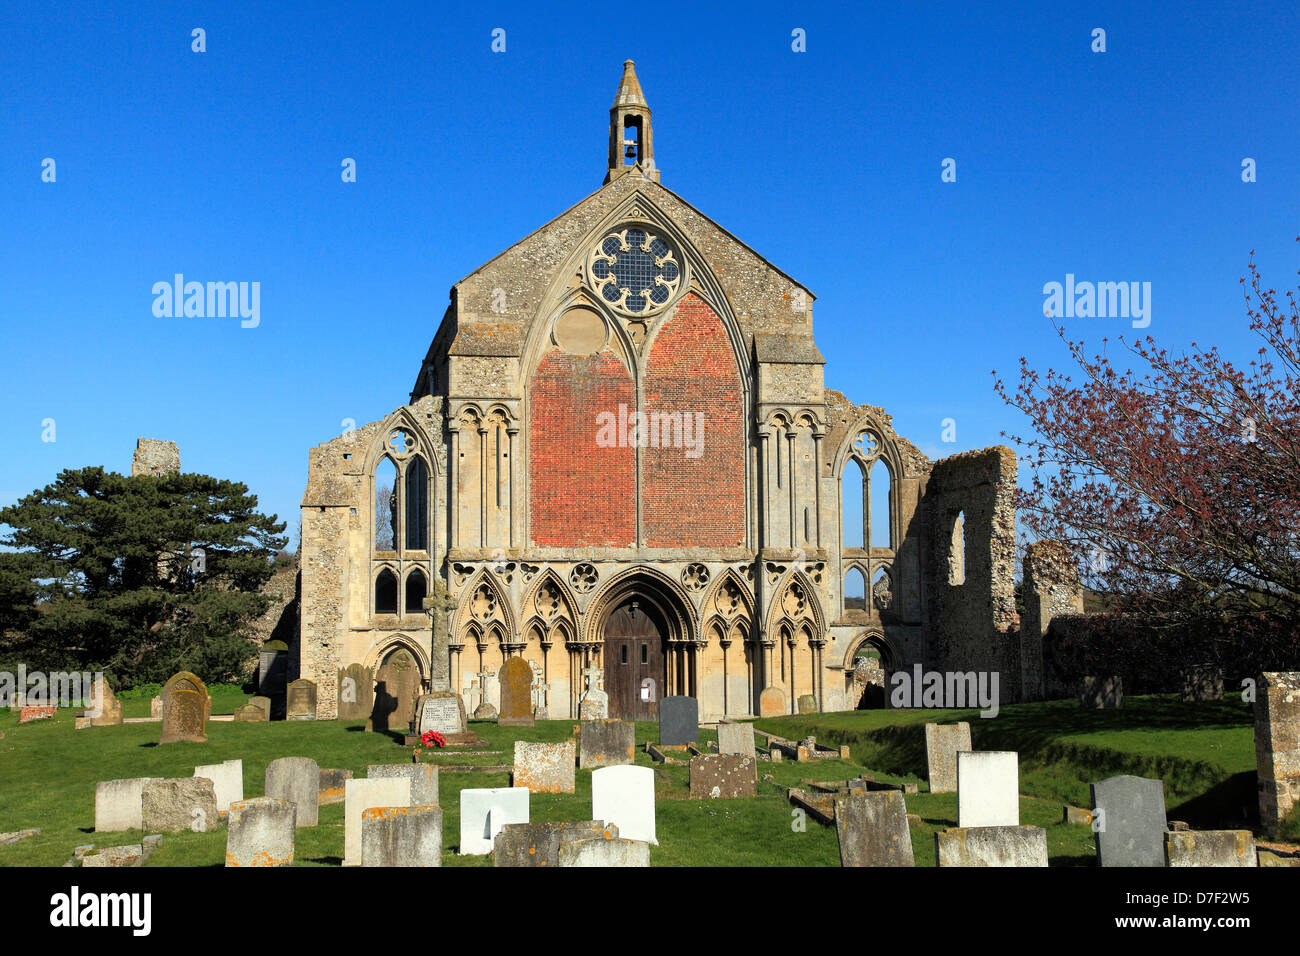 Binham Priory, Norfolk, West Front of monastic church, medieval English architecture, England UK, Benedictine Order - Stock Image